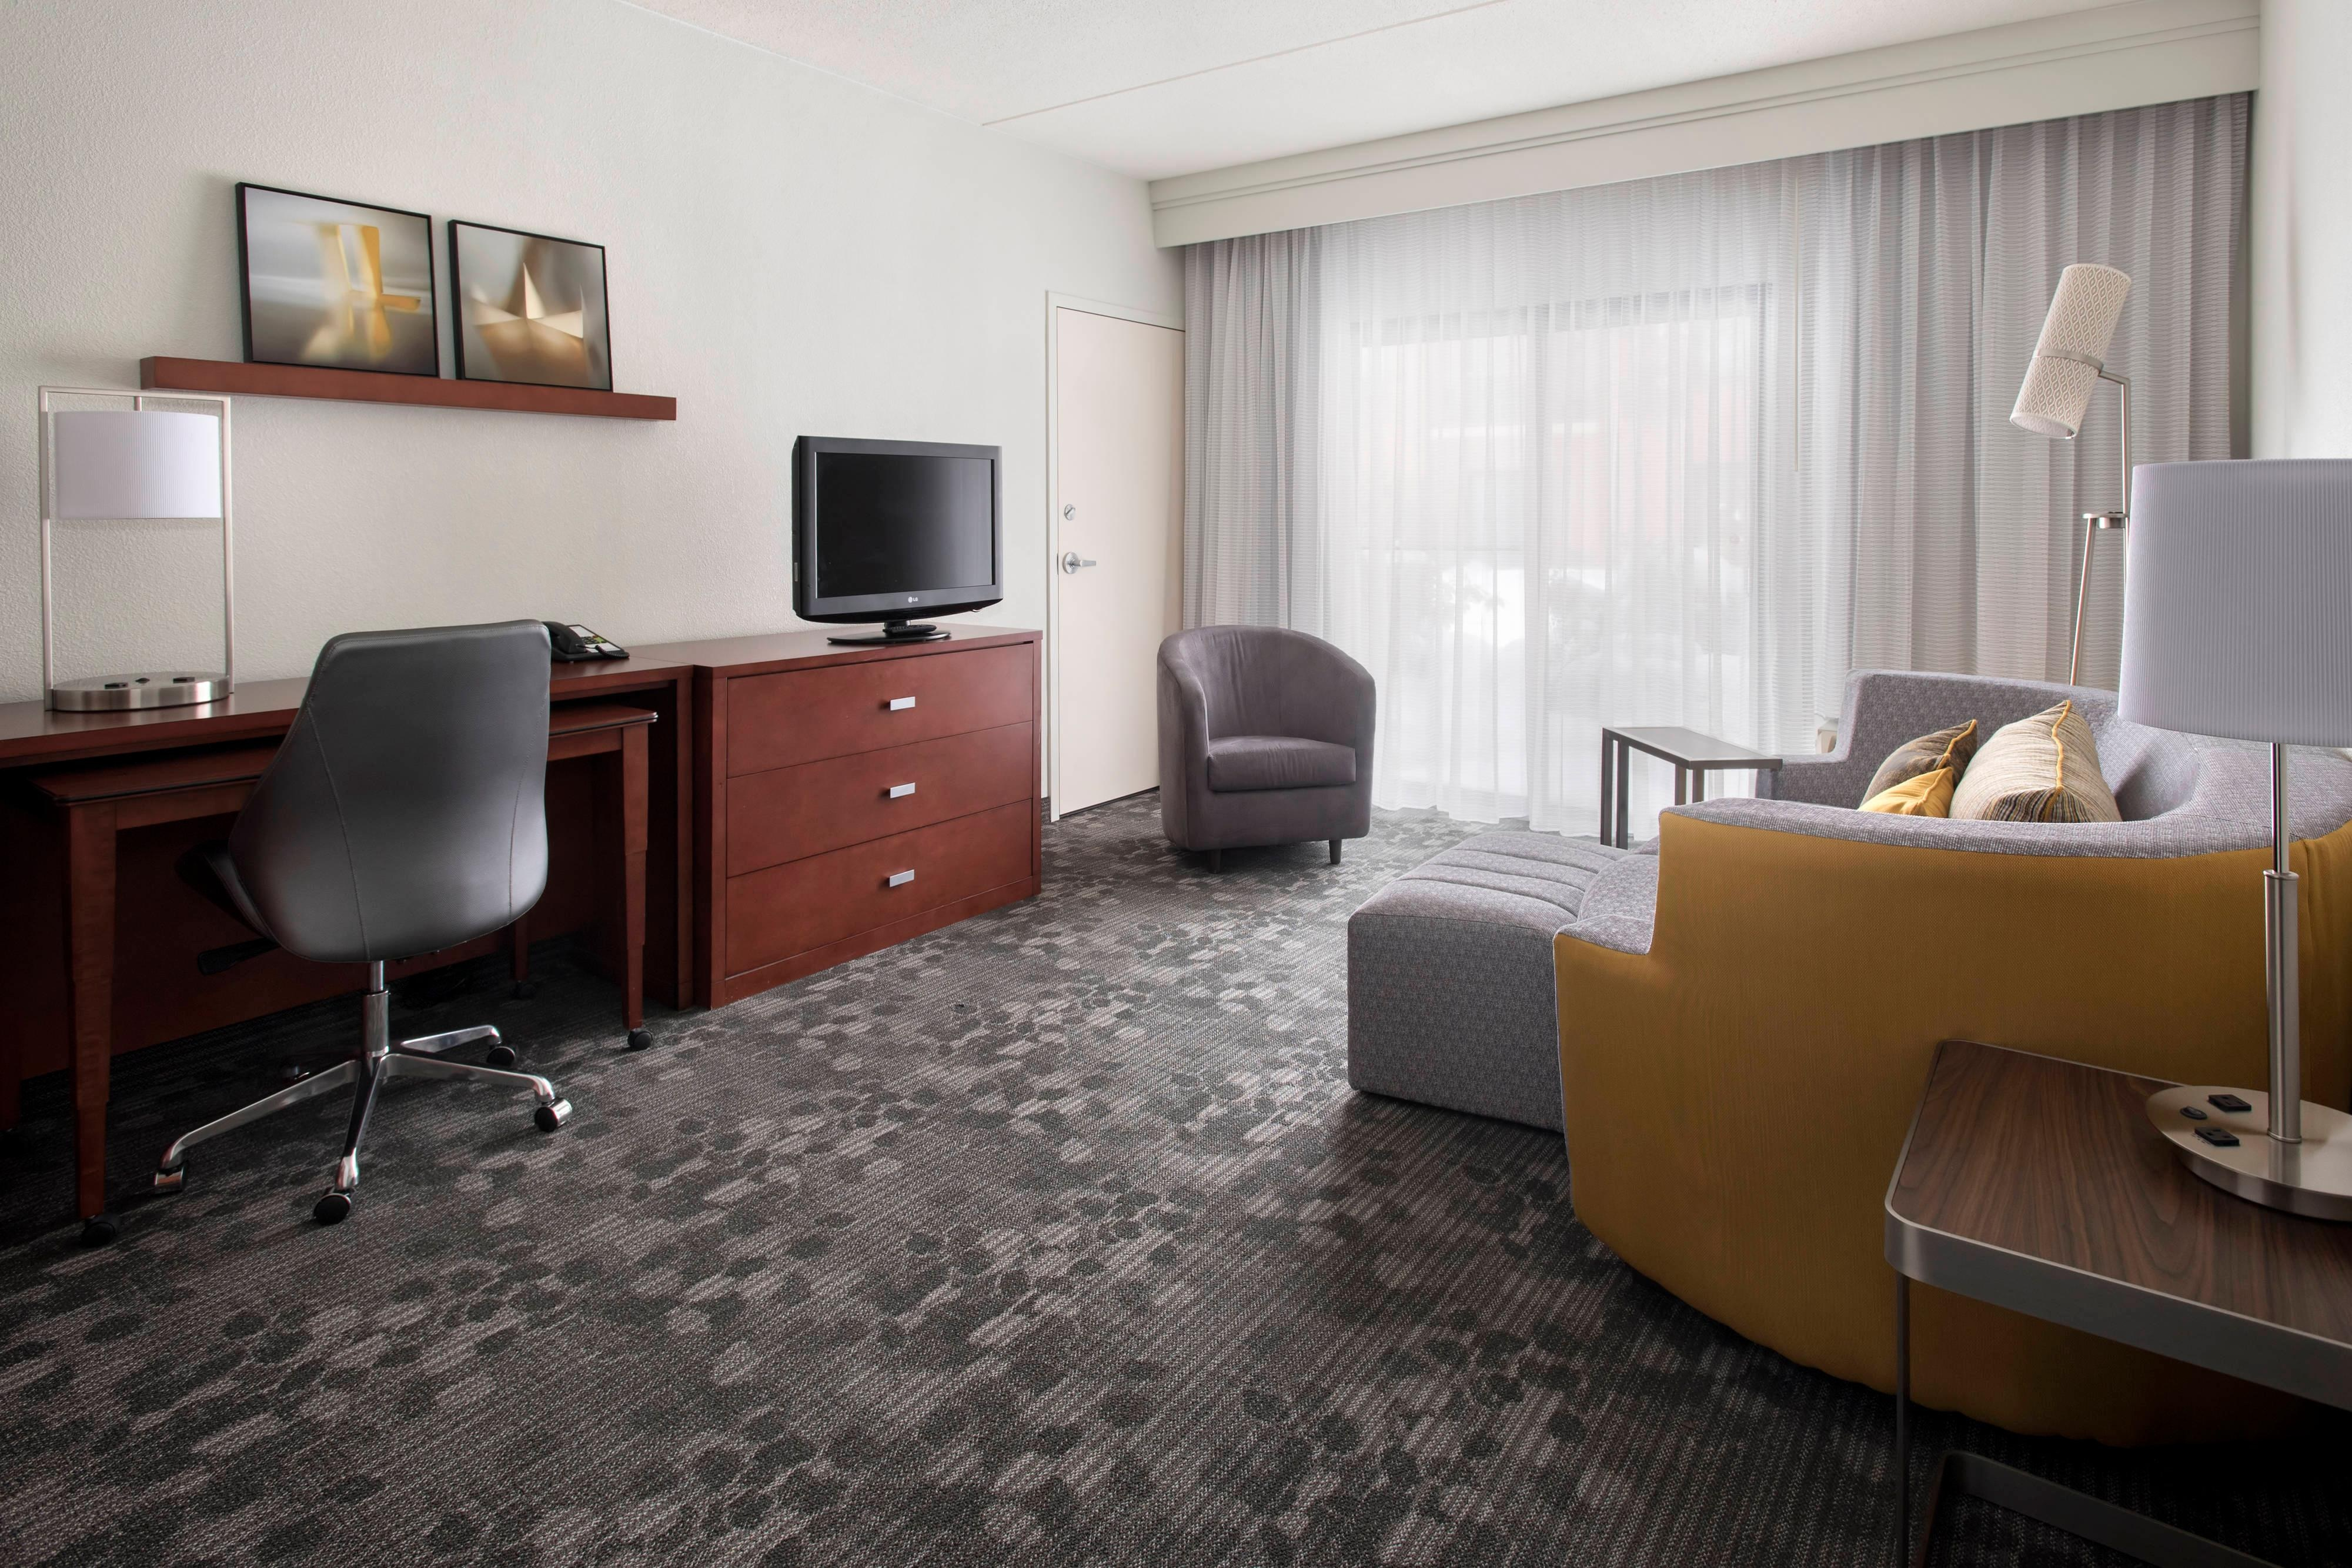 Norwood hotel rooms near canton ma courtyard boston - Hotels with 2 bedroom suites in boston ma ...